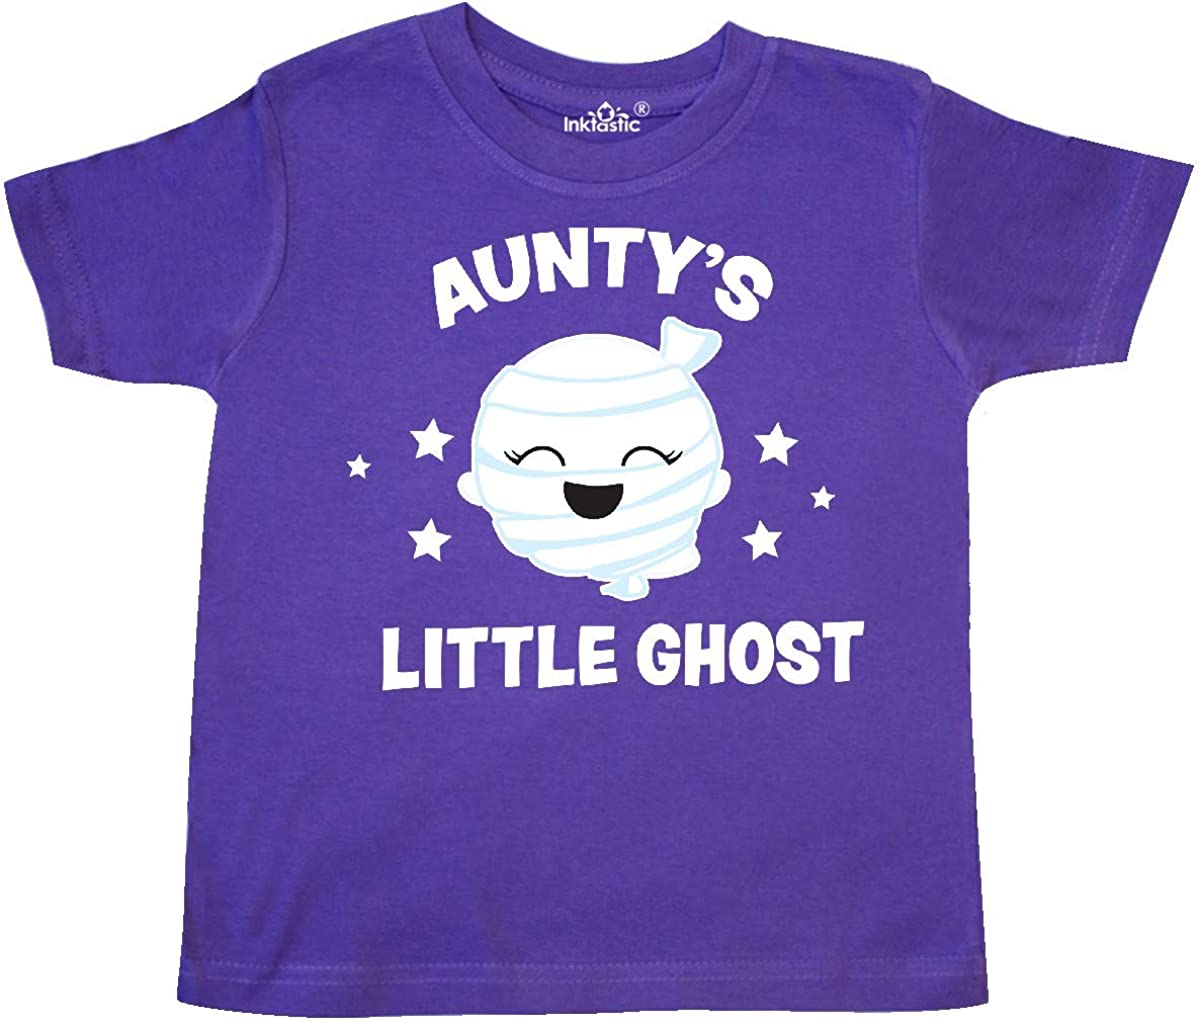 inktastic Cute Auntys Little Ghost with Stars Toddler T-Shirt